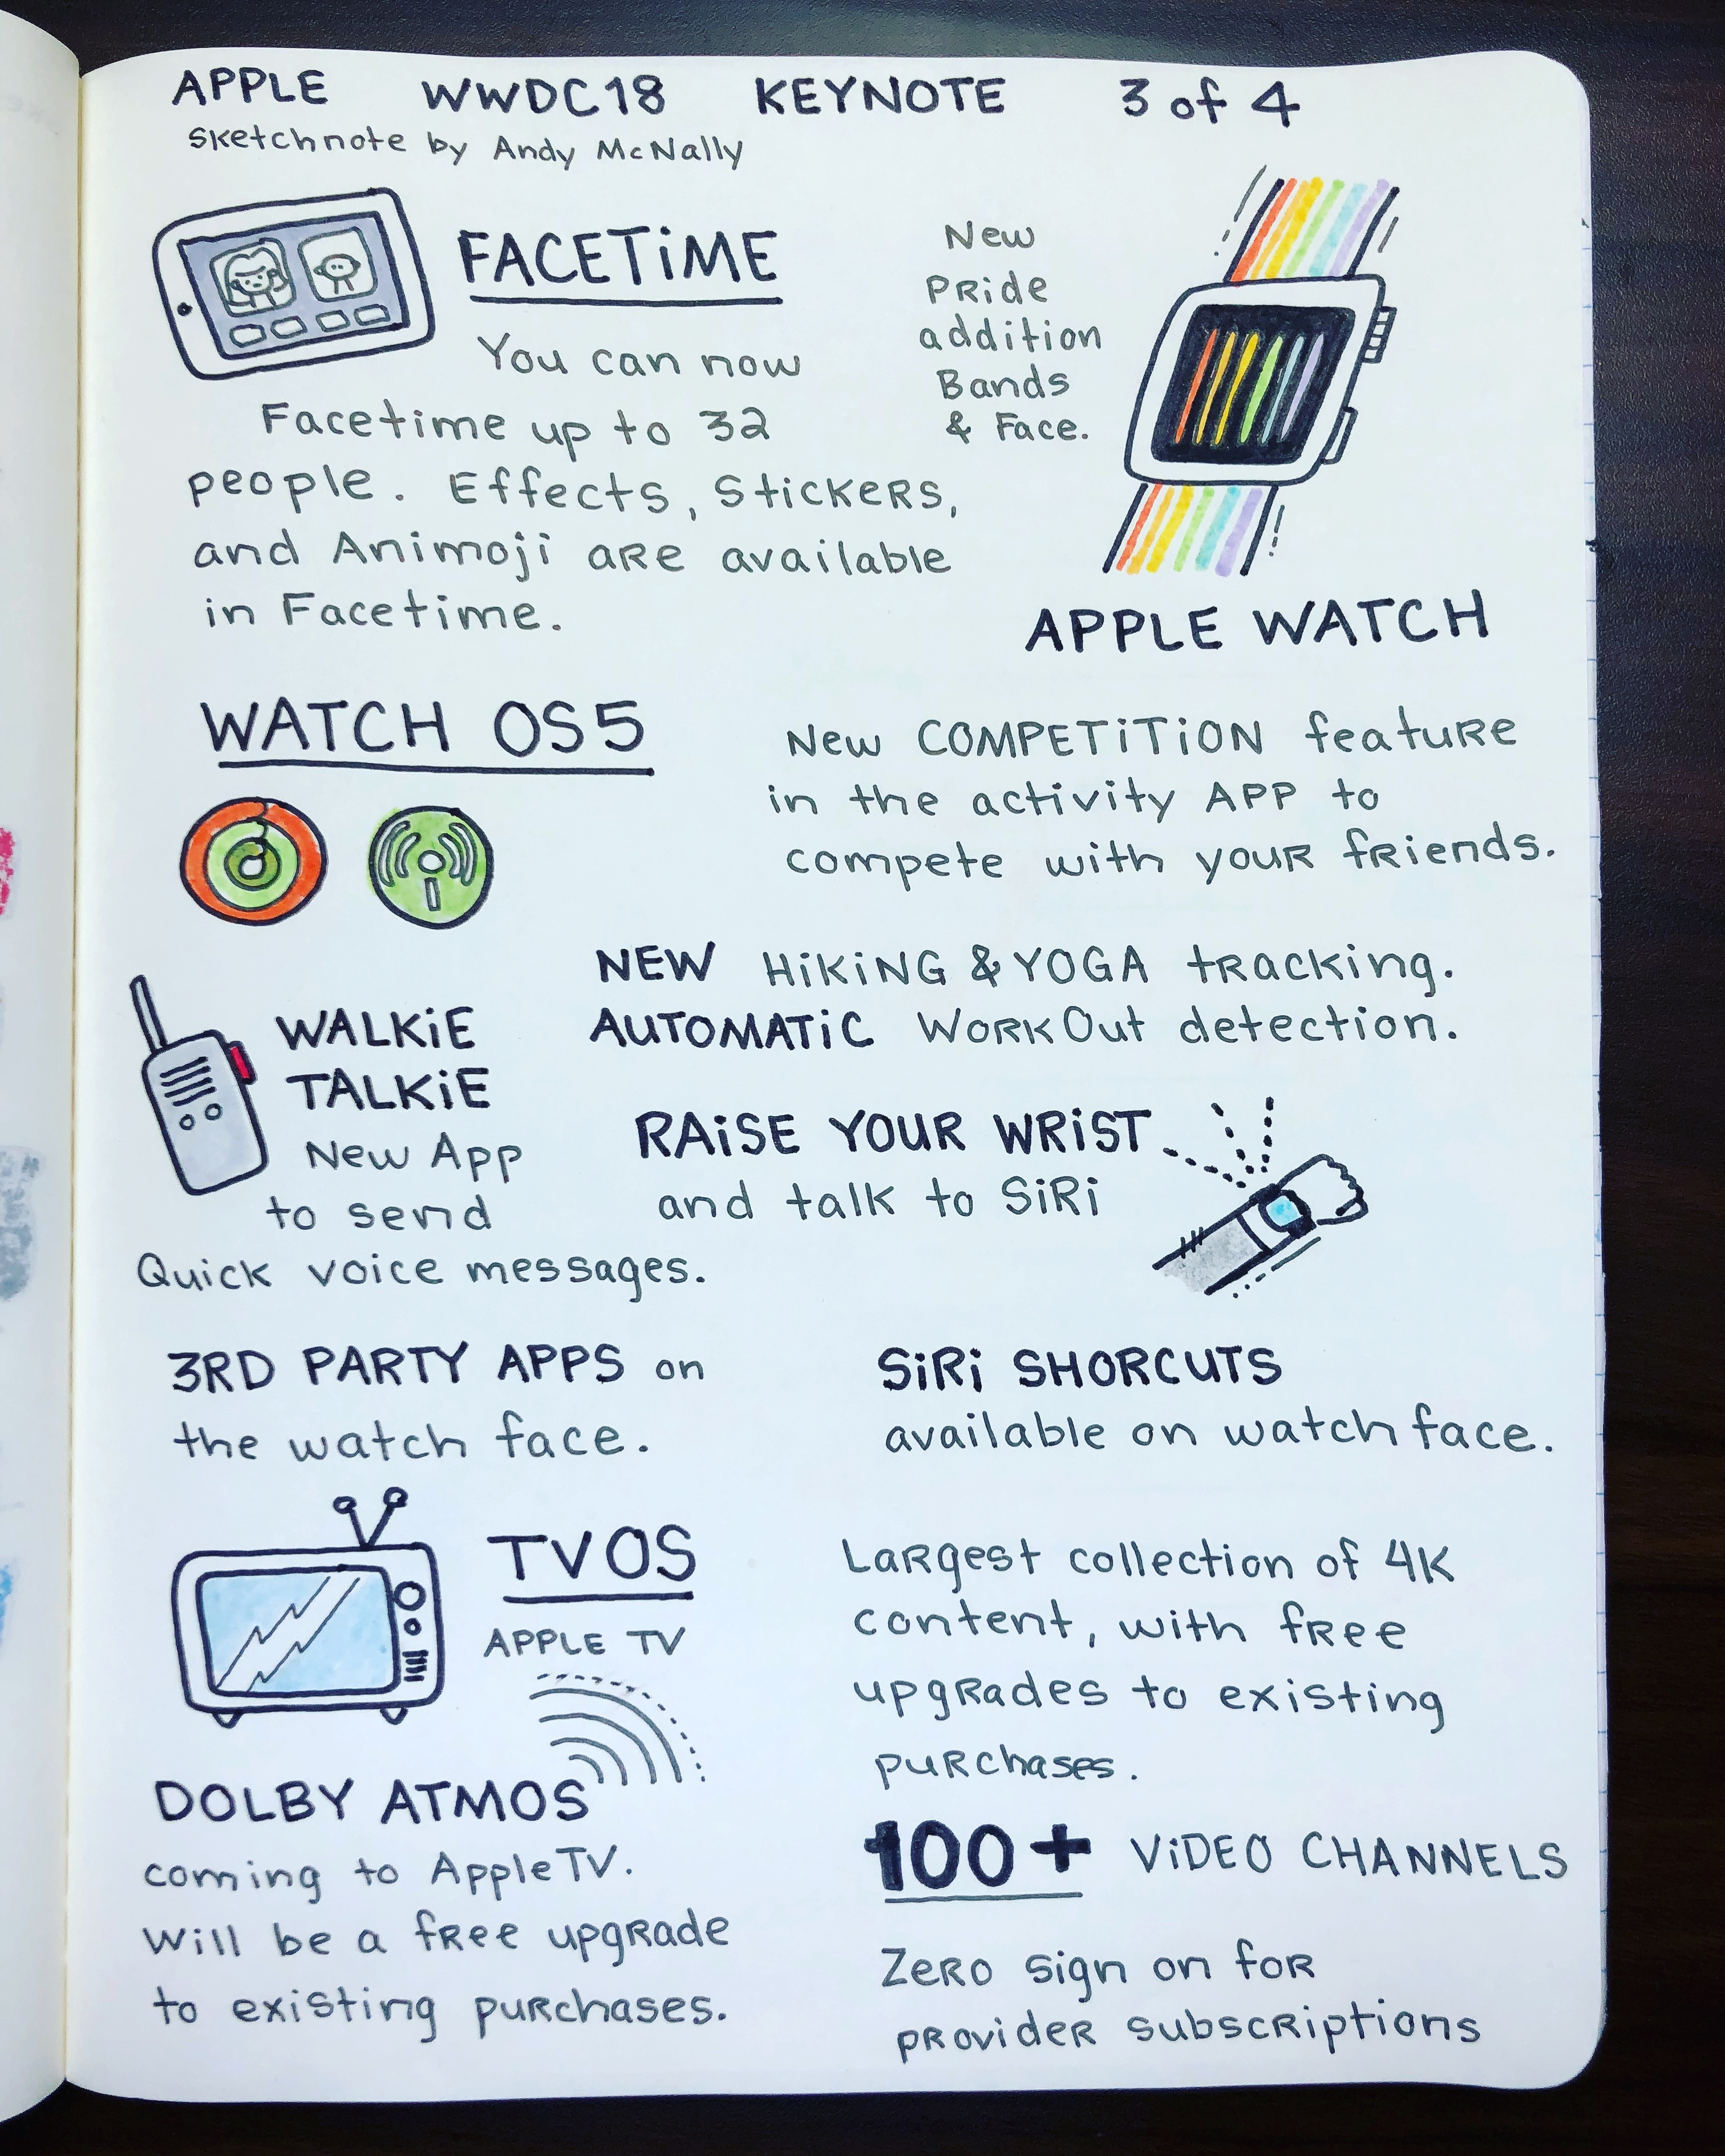 Apple WWDC 2018 keynote in sketchnotes, Part 3 of 4.